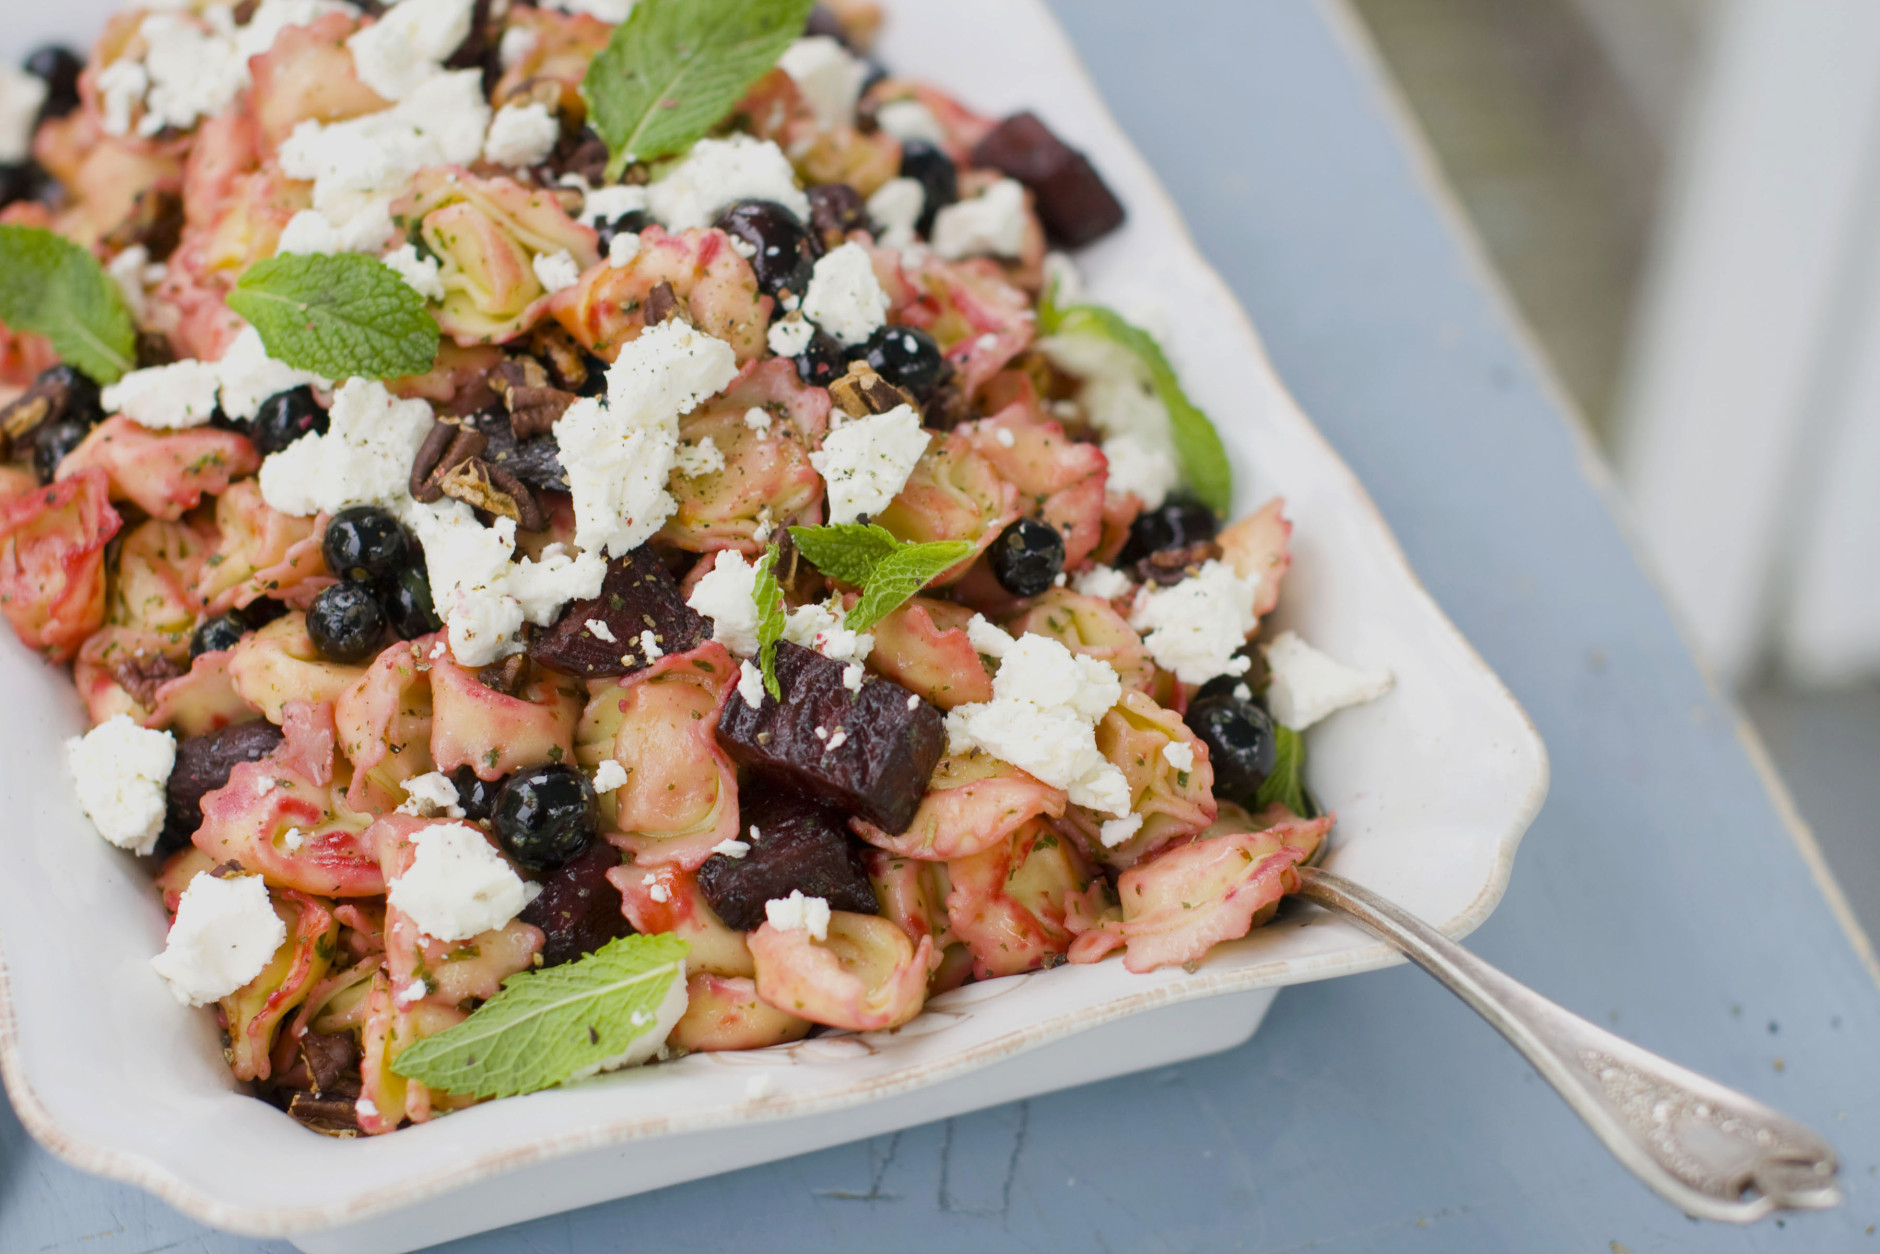 This image taken on May 14, 2012 in Concord, N.H. shows a roasted beet tortellini salad with fresh blueberries and soft goat cheese. (AP Photo/Matthew Mead)